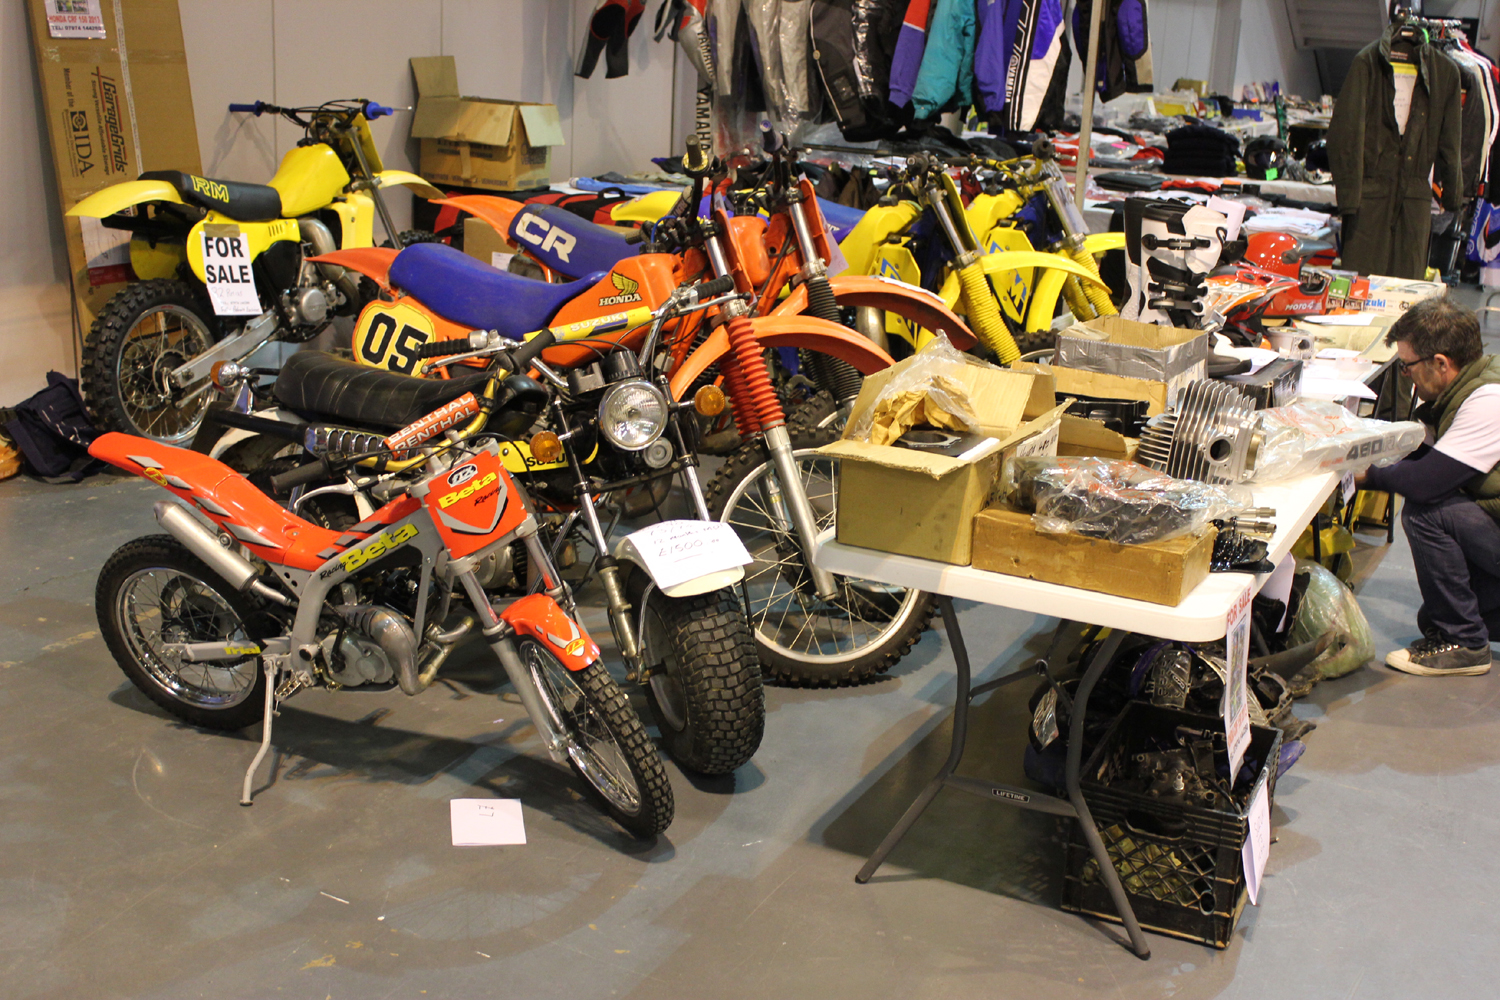 classicdirtbikerider.com-photo by Mr J-2015 Telford classic dirt bike show-3